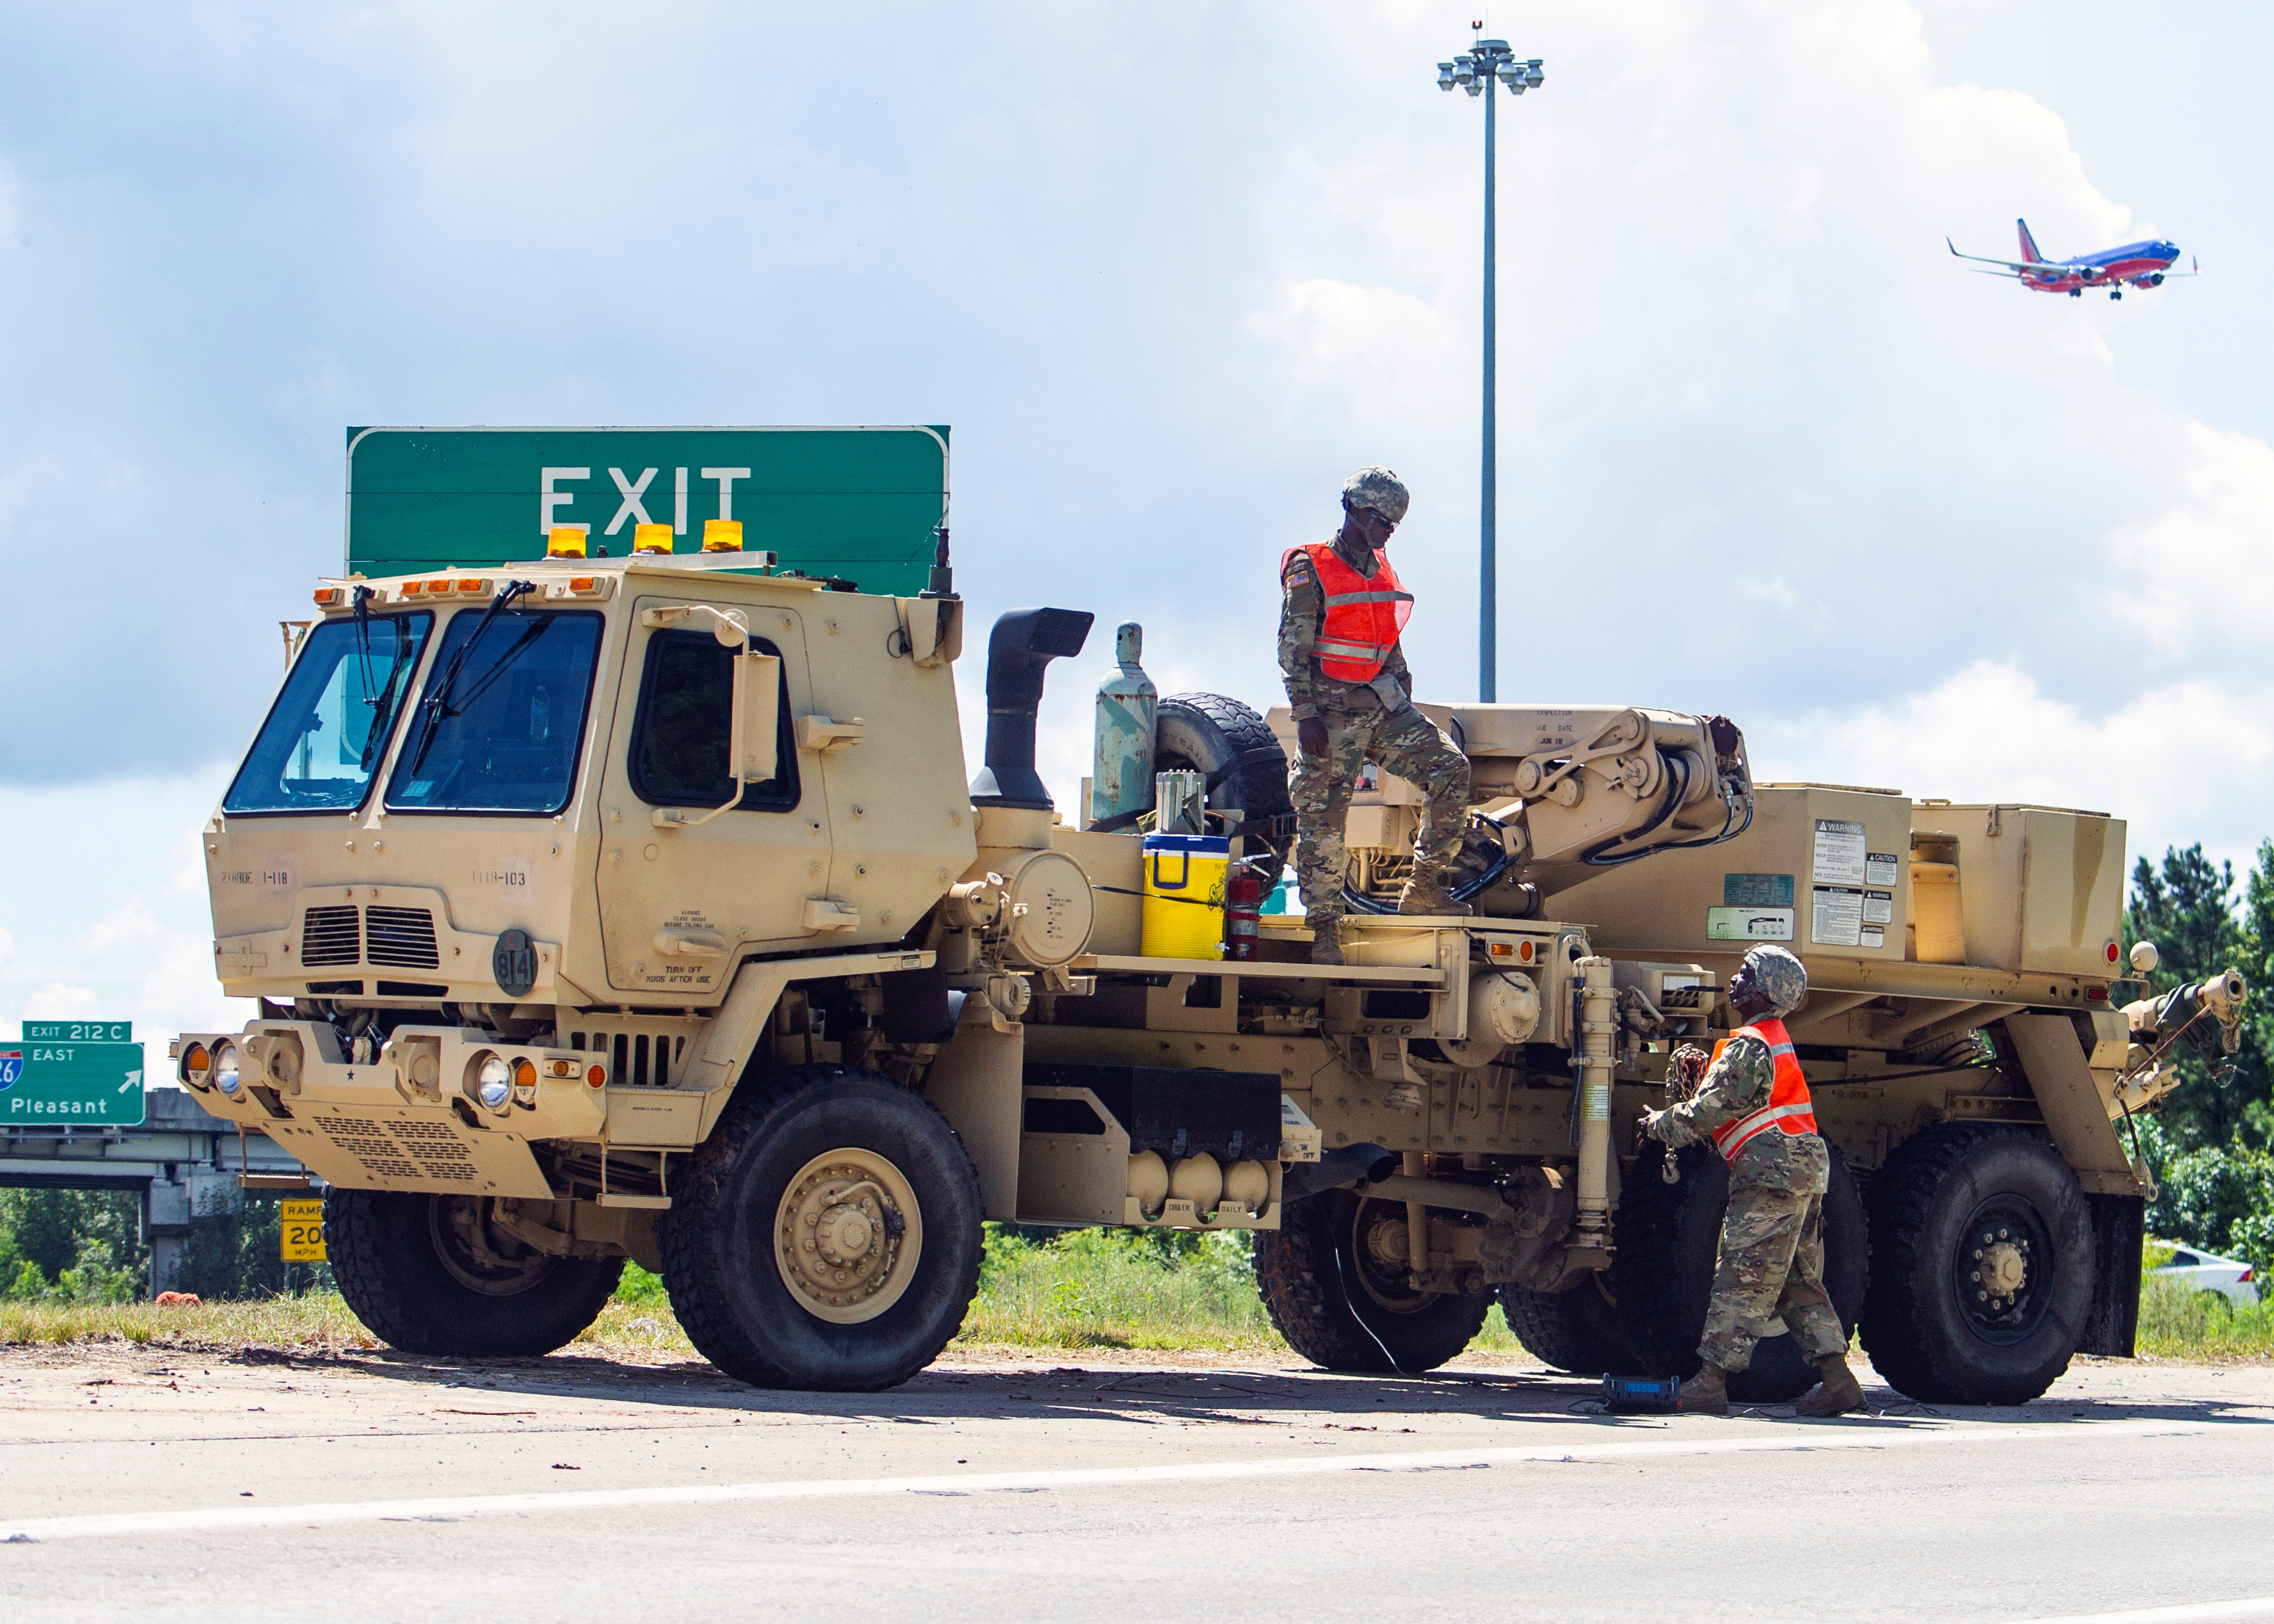 South Carolina Army National Guard soldiers prepare recovery equipment to provide support for disabled vehicles